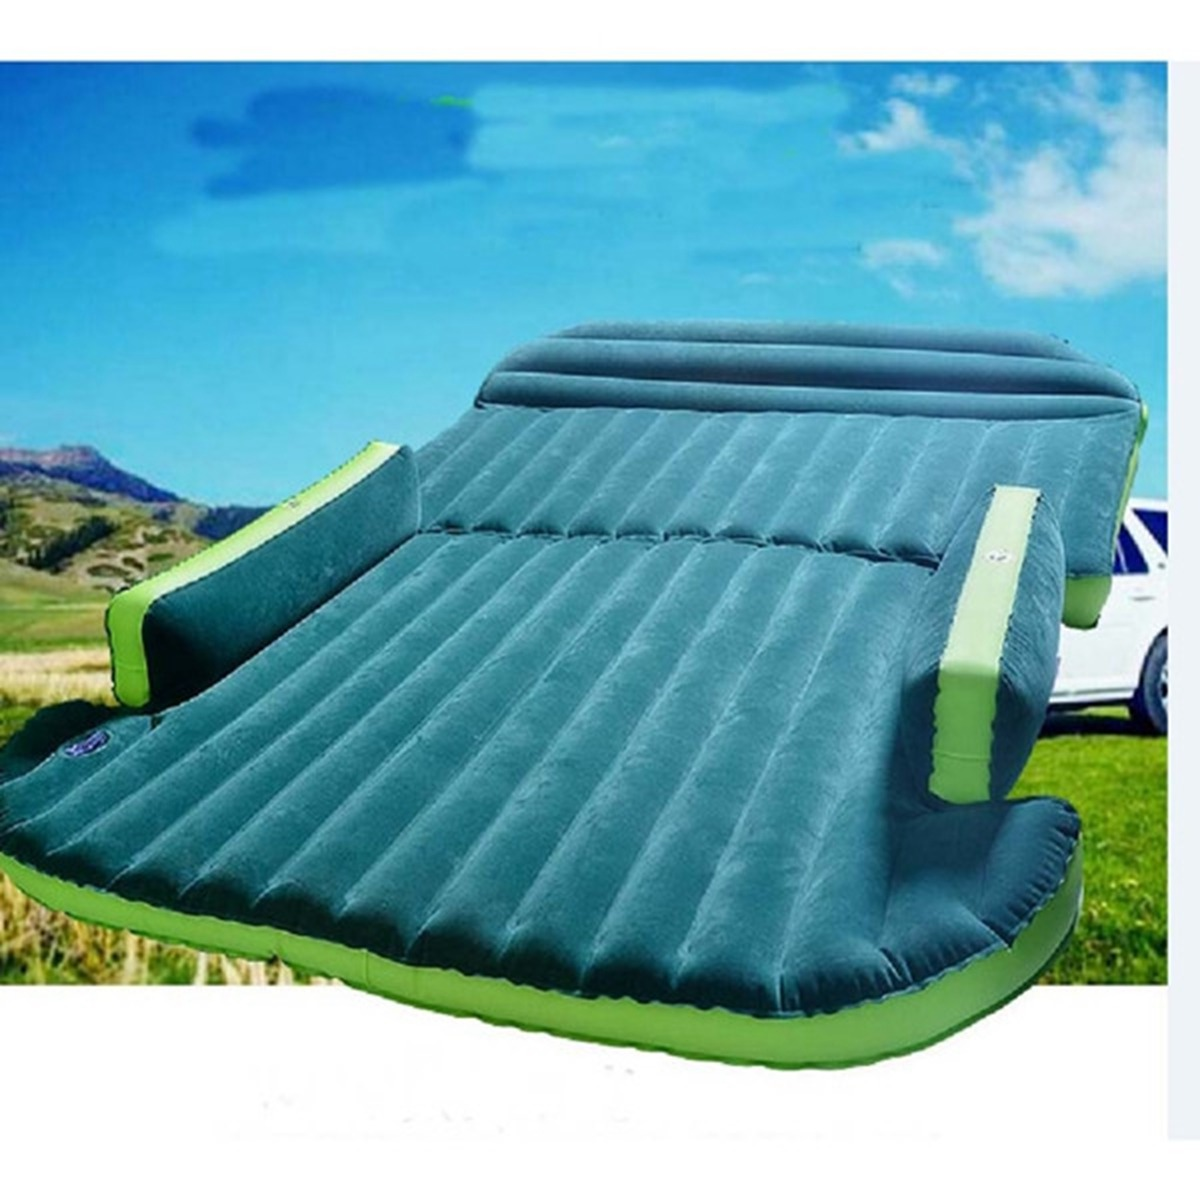 Universal Car Air Mattress Travel Bed Car Back Seat Cover Inflatable Mattress Air Bed Inflatable Car Bed For Camping for SUV new car air mattress travel bed car back seat cover inflatable mattress air bed good inflatable car bed for camping